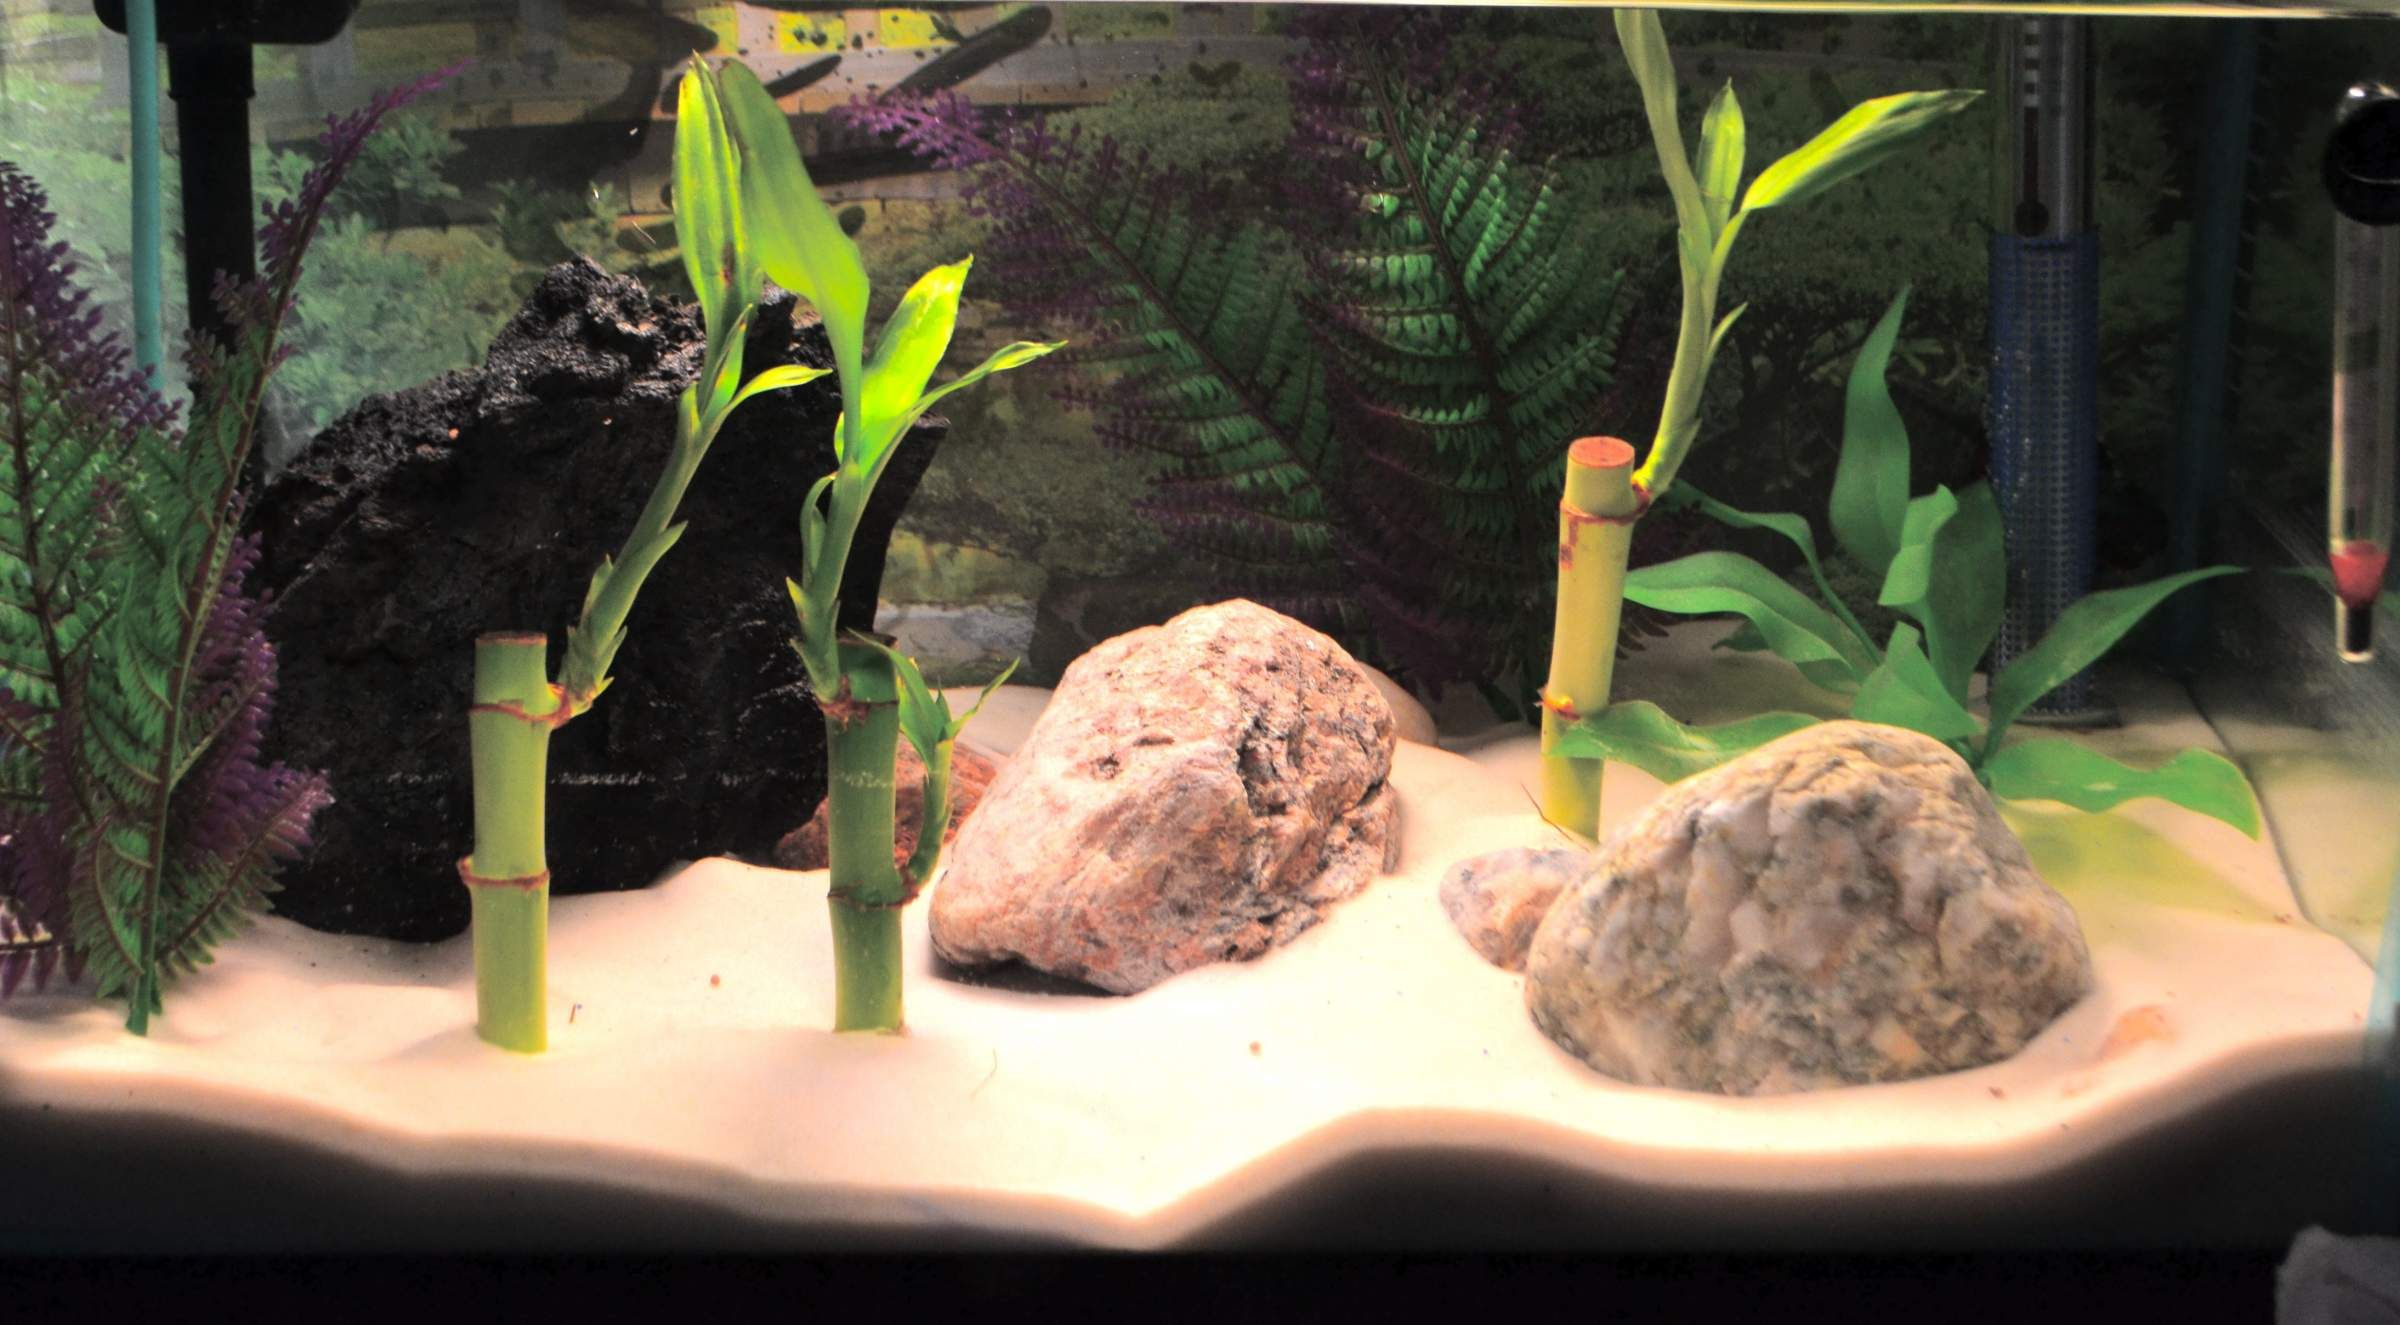 Fish aquarium information - Find This Pin And More On Fish Tank Scenes